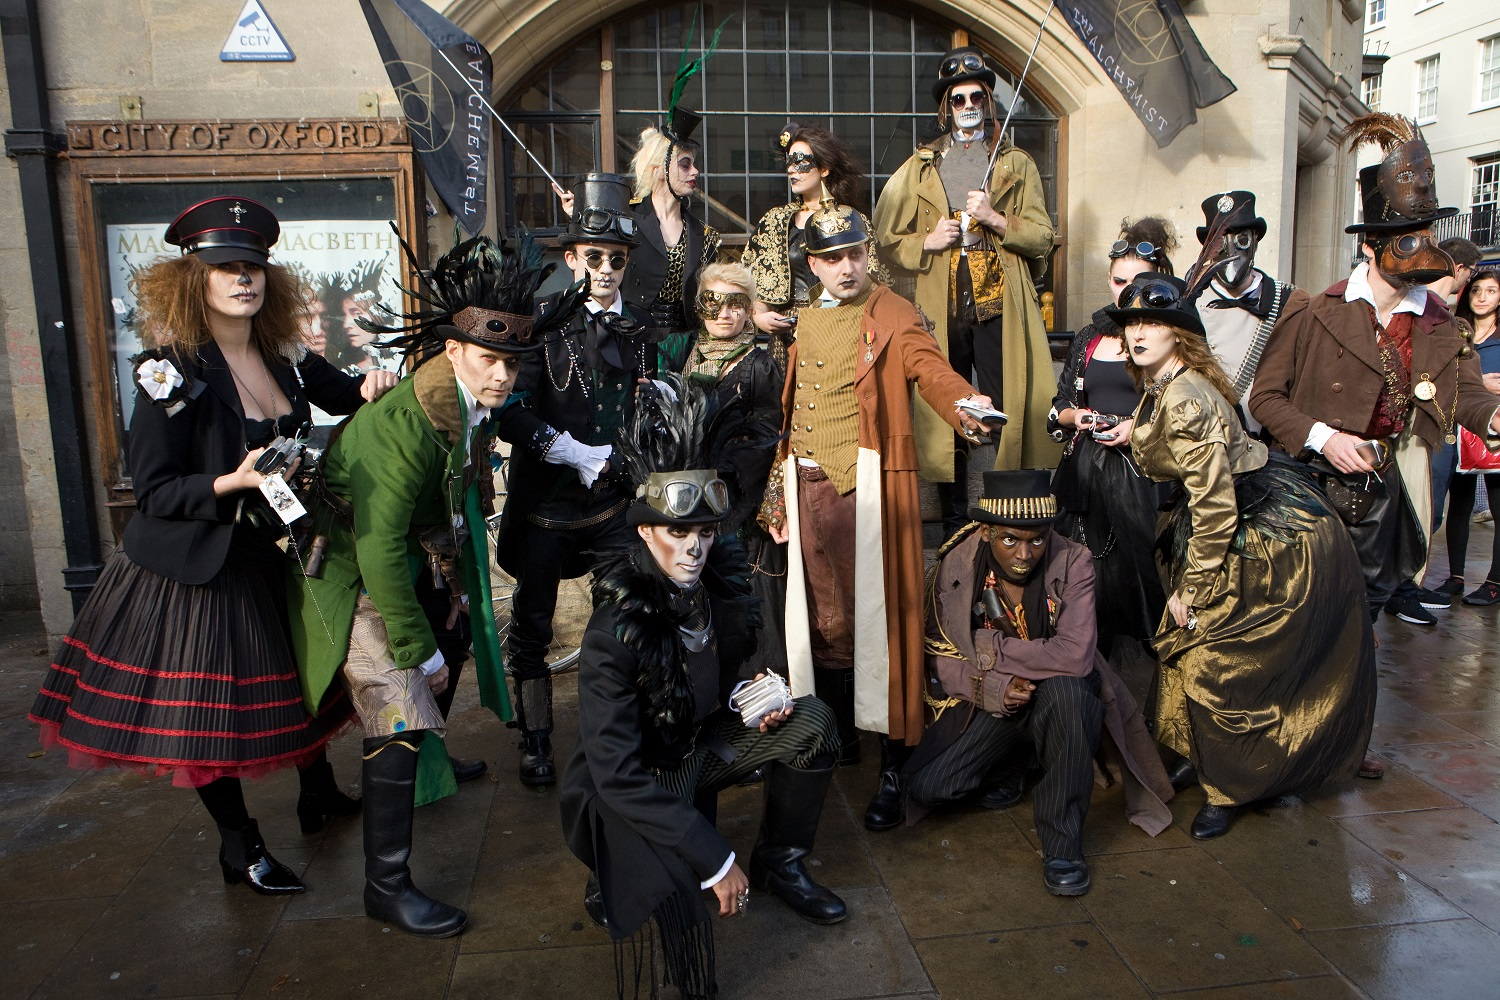 A group of attractive men and women pose outside a historic building in Oxford, wearing Streampunk clothing